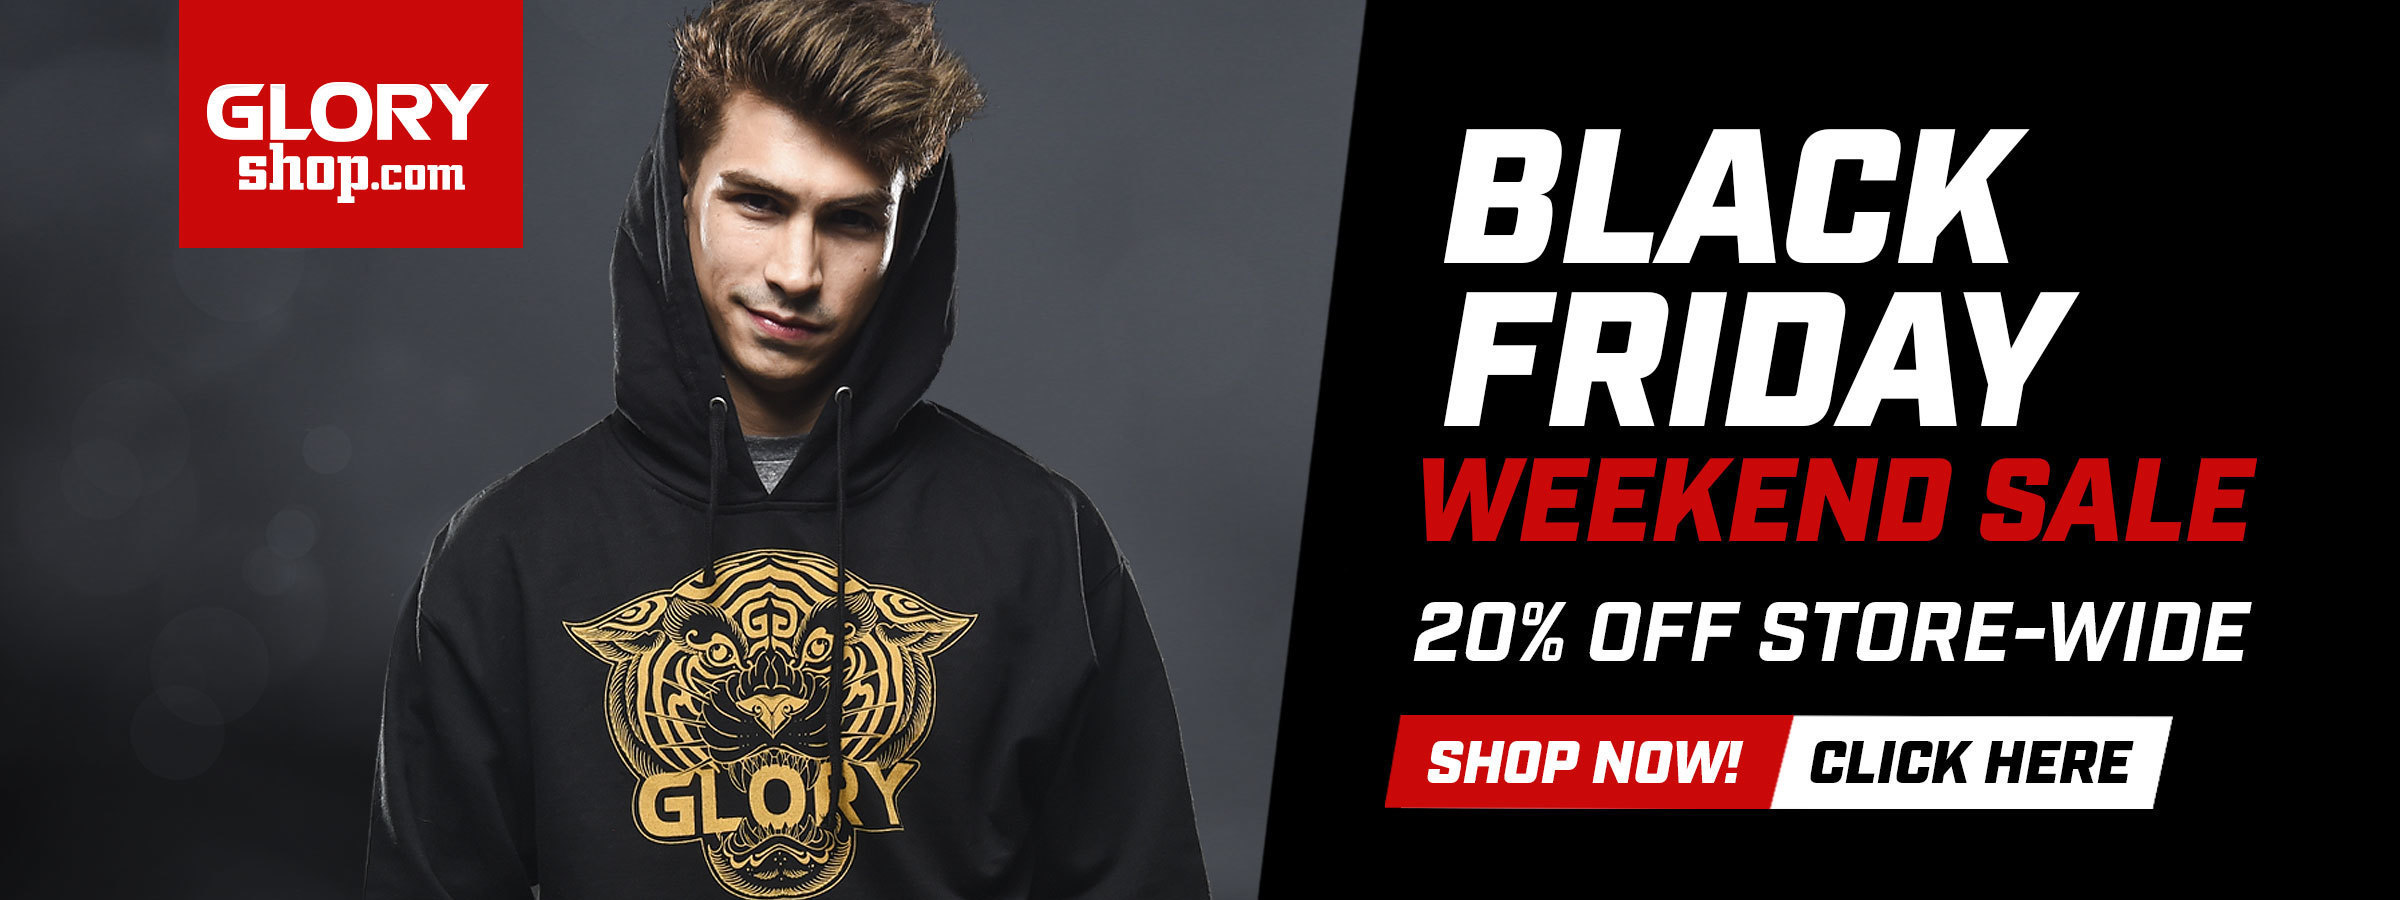 20% OFF STORE-WIDE ON GLORYSHOP